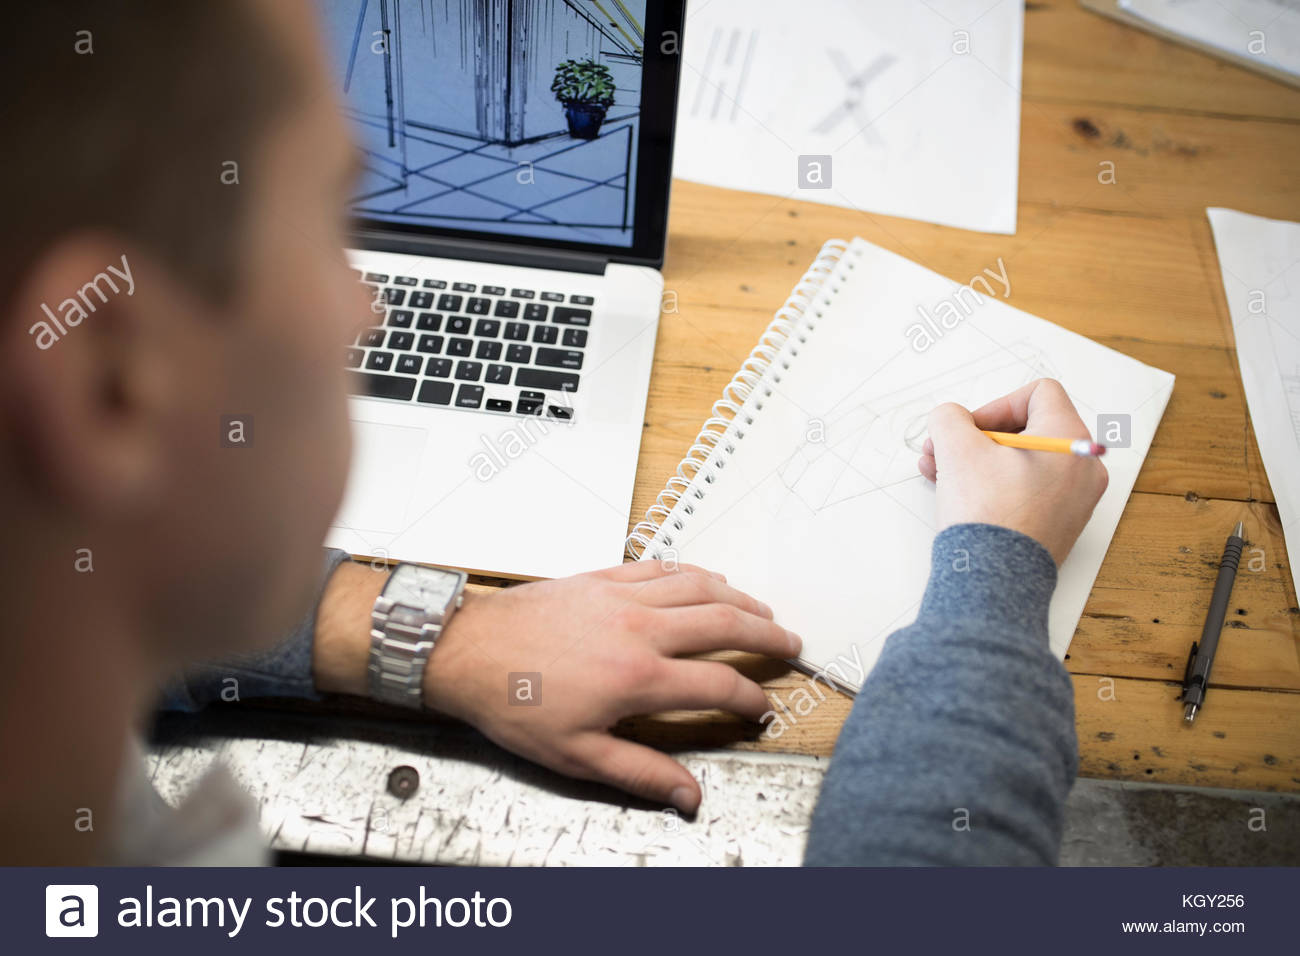 Over the shoulder view male architect sketching in notebook at laptop - Stock Image